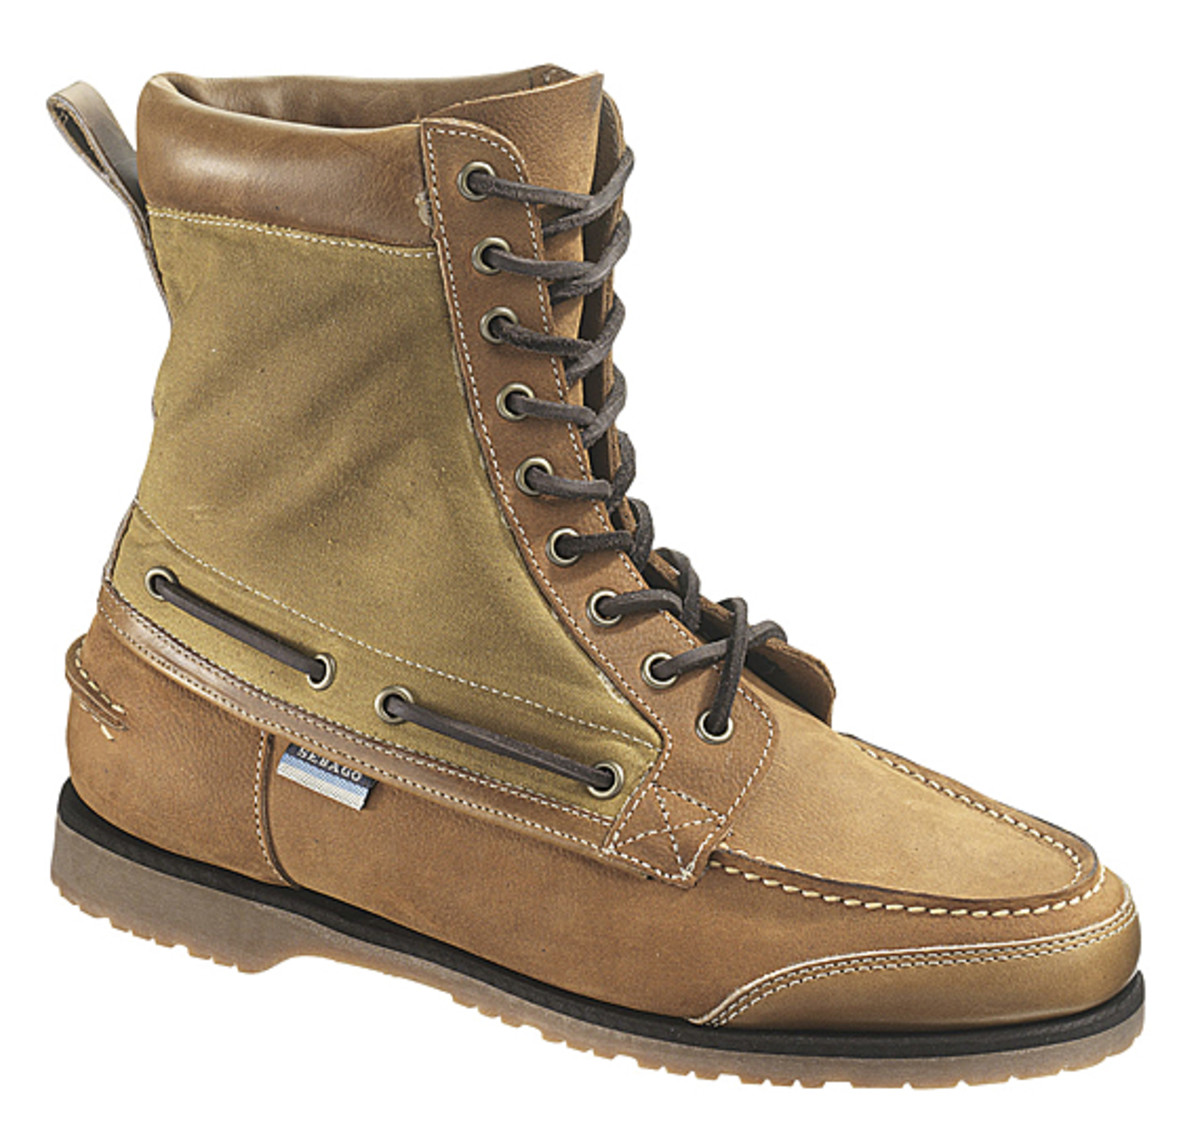 filson-sebago-capsule-collection-osmore-boots-02